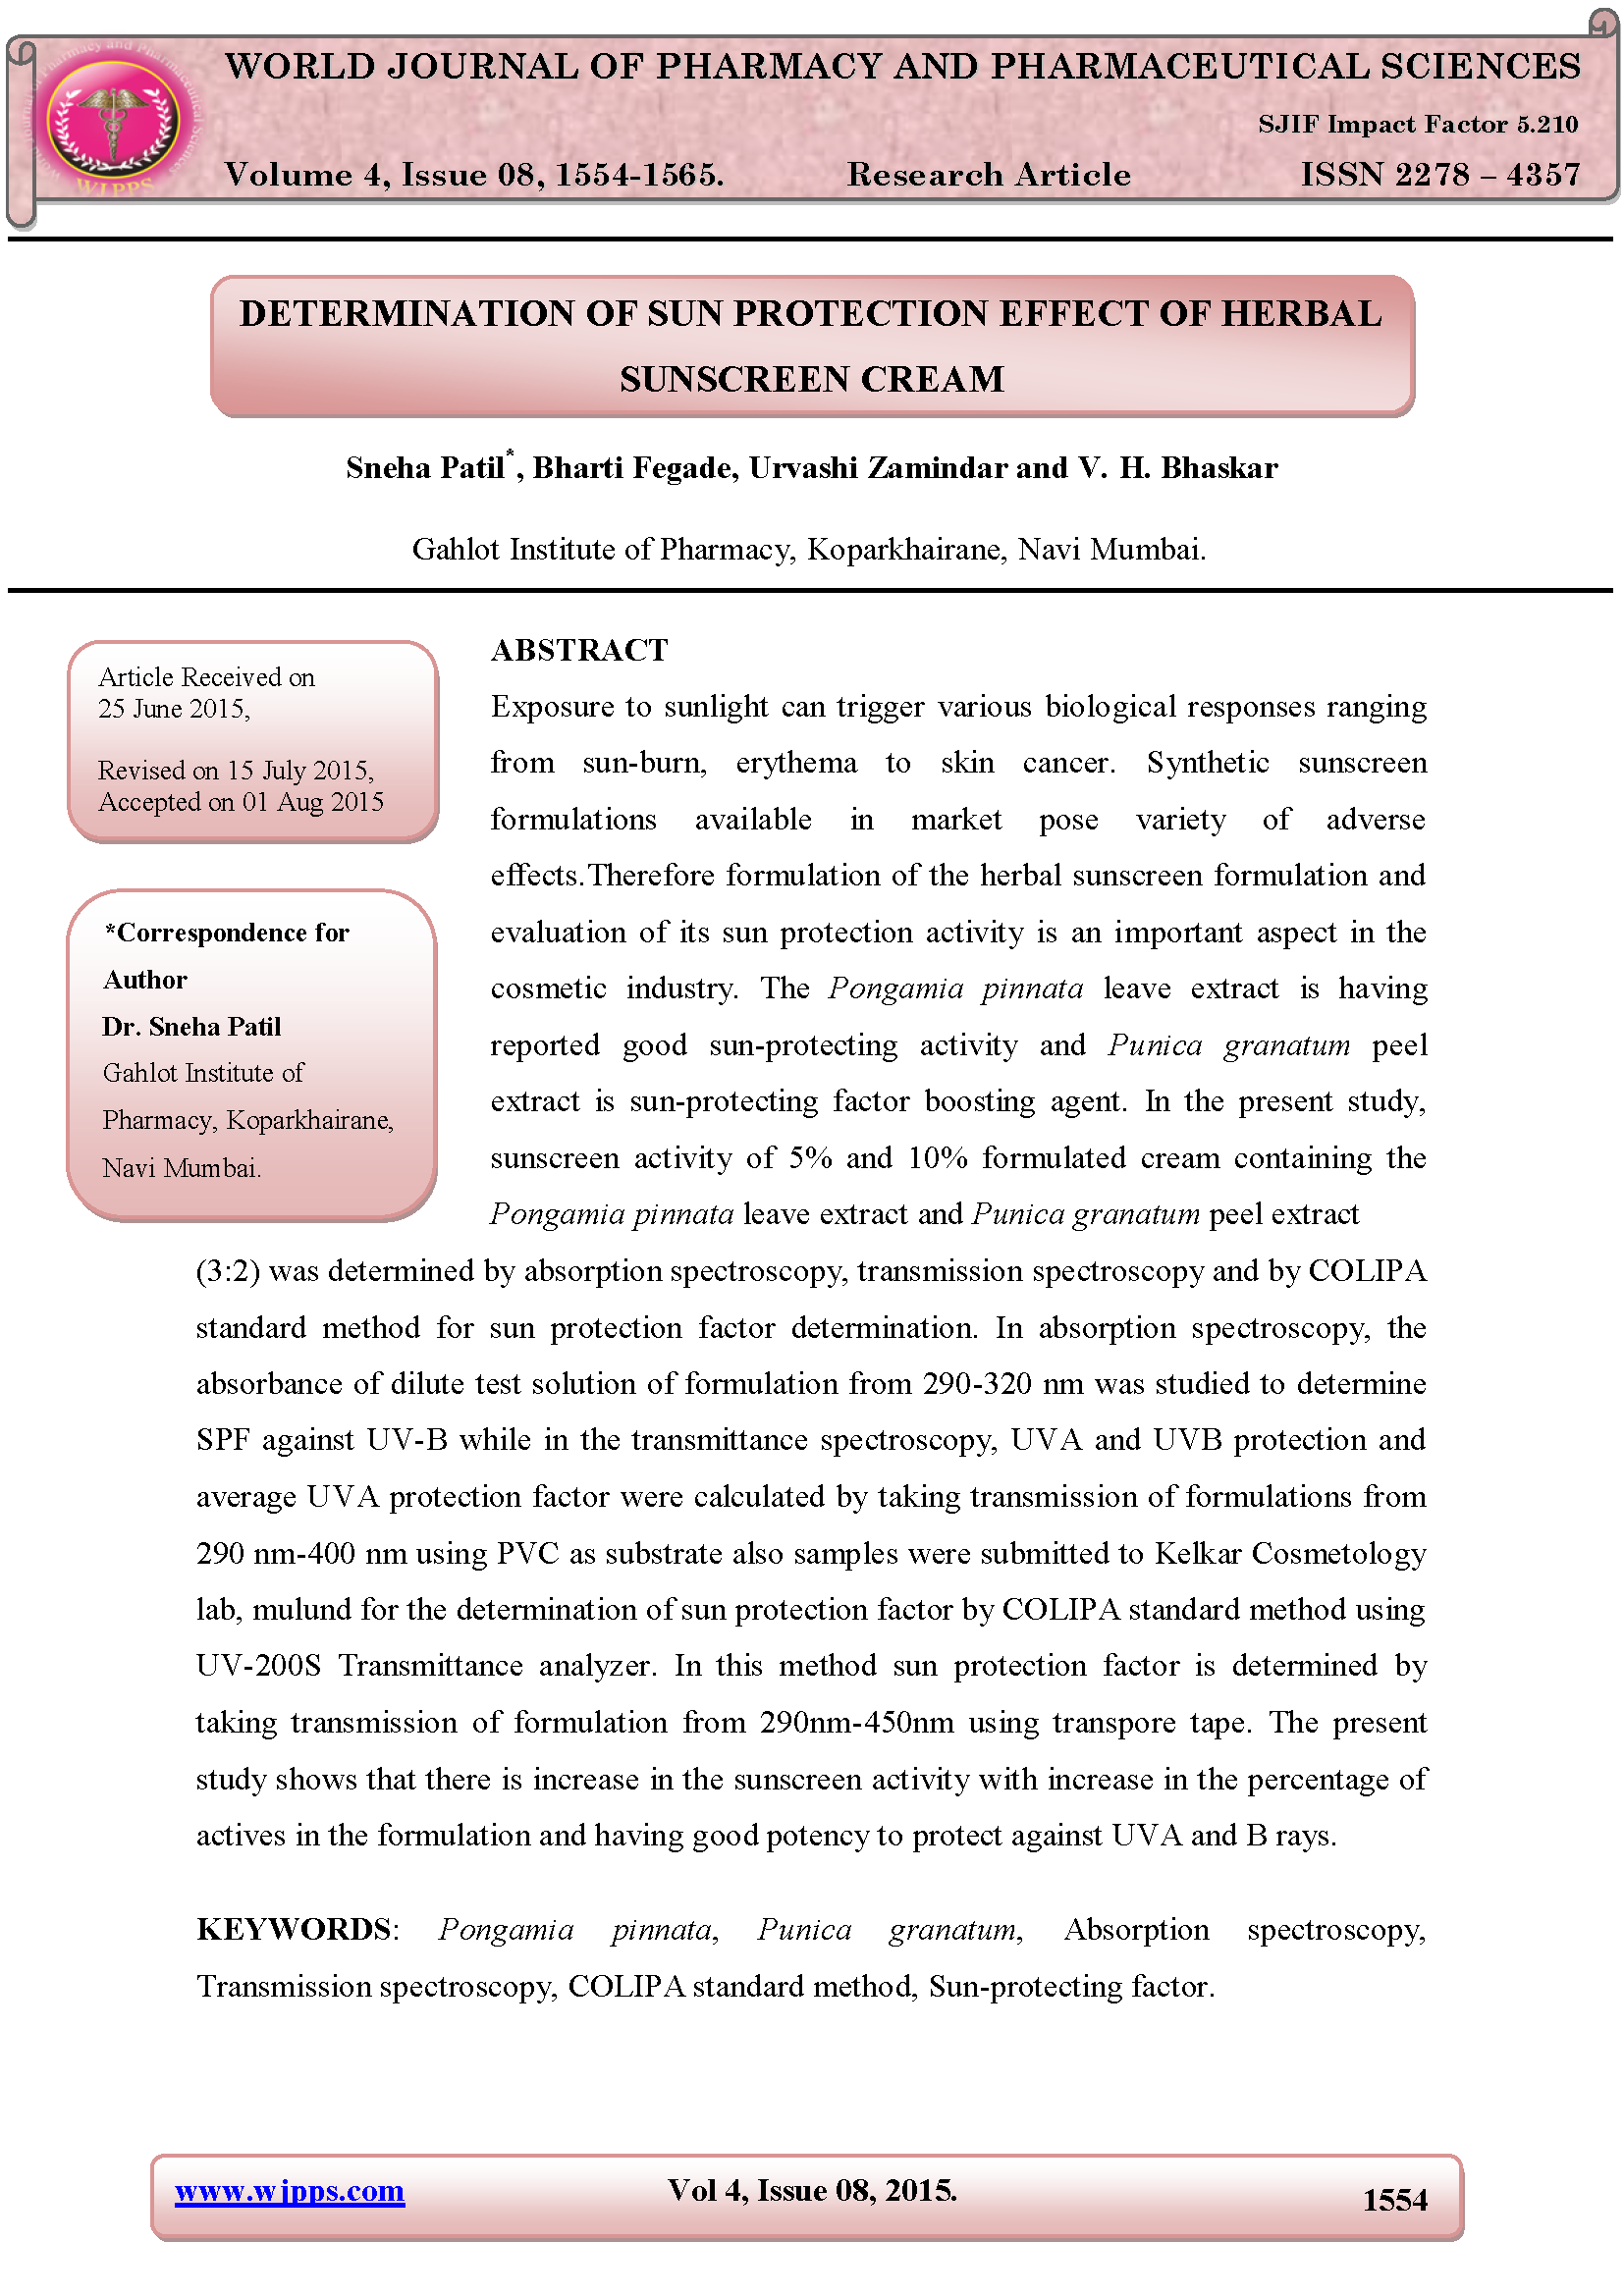 DETERMINATION OF SUN PROTECTION EFFECT OF HERBAL SUNSCREEN CREAM Page 1